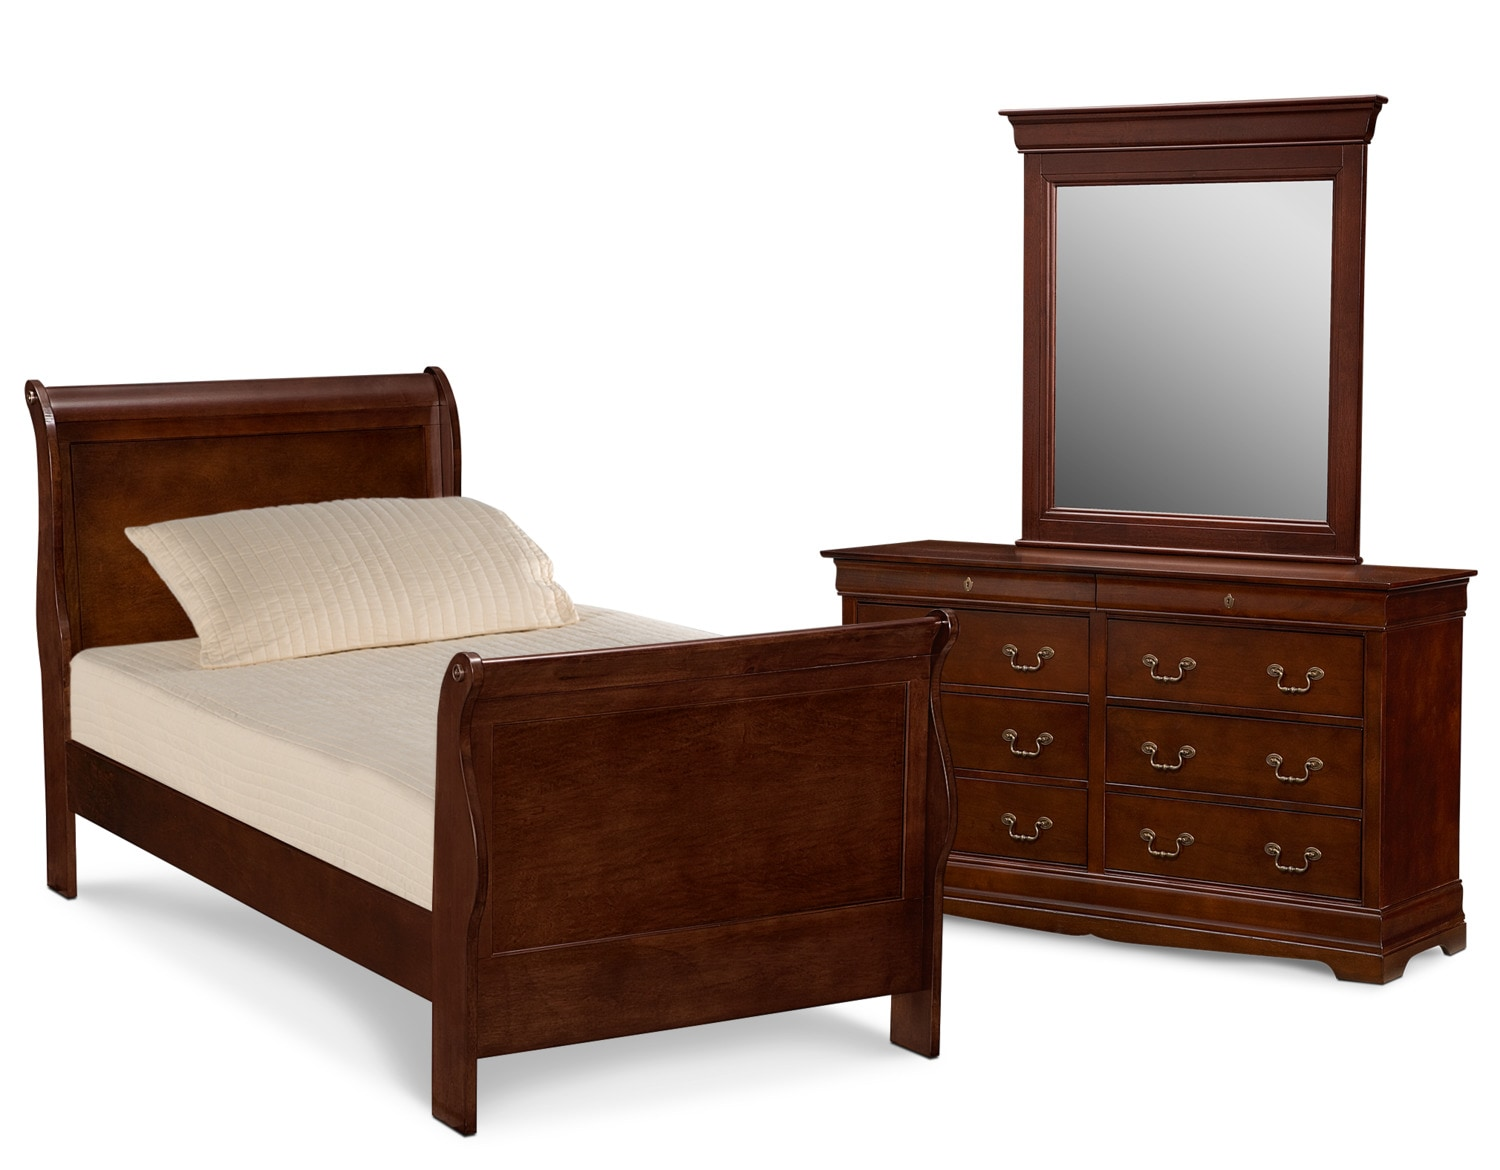 Neo classic youth 5 piece twin bedroom set cherry value city furniture and mattresses for Value city furniture bedroom set